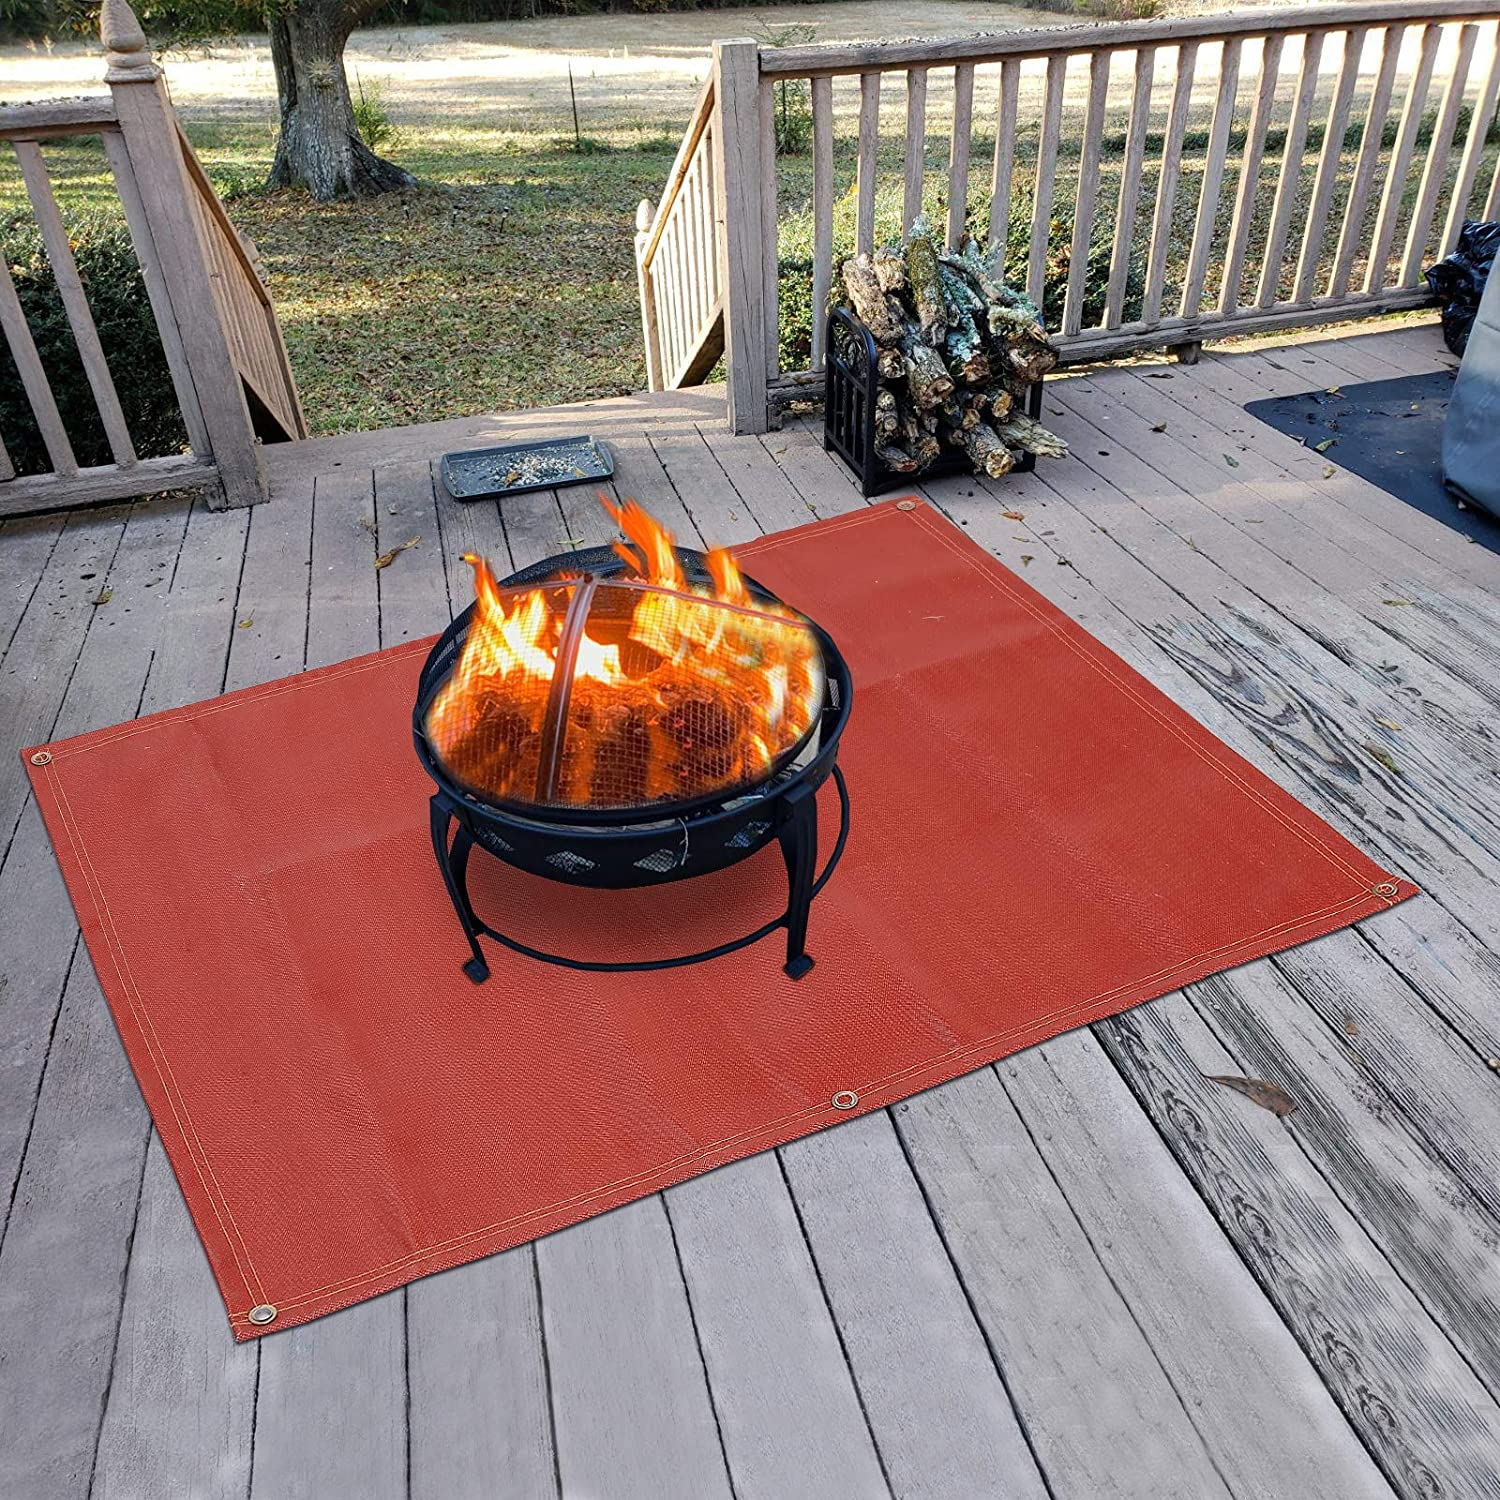 Fire Pit New Orleans Mall Mat—Silicone Store stove mat,Retardant fire Firep